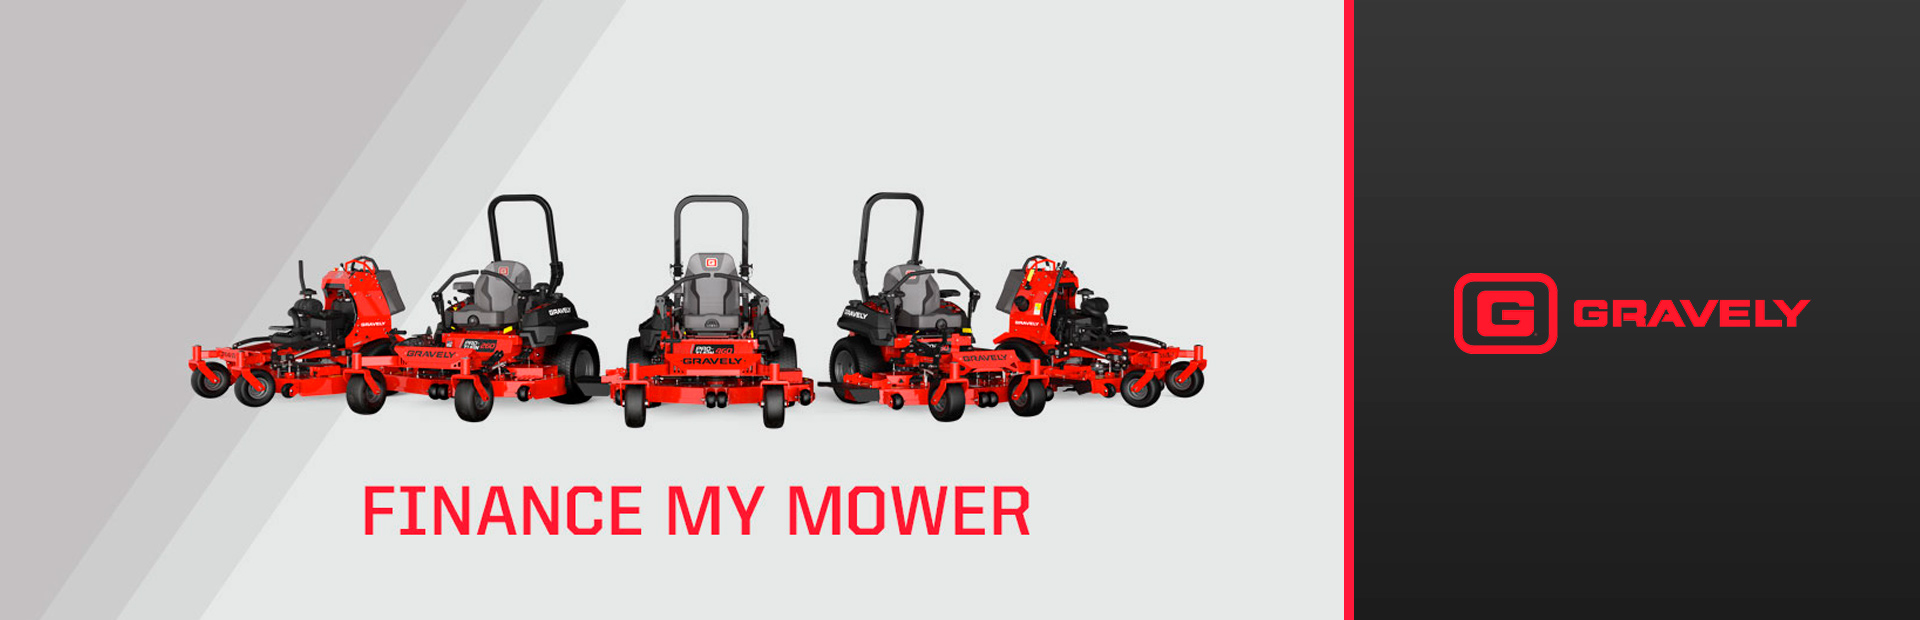 FINANCE MY MOWER